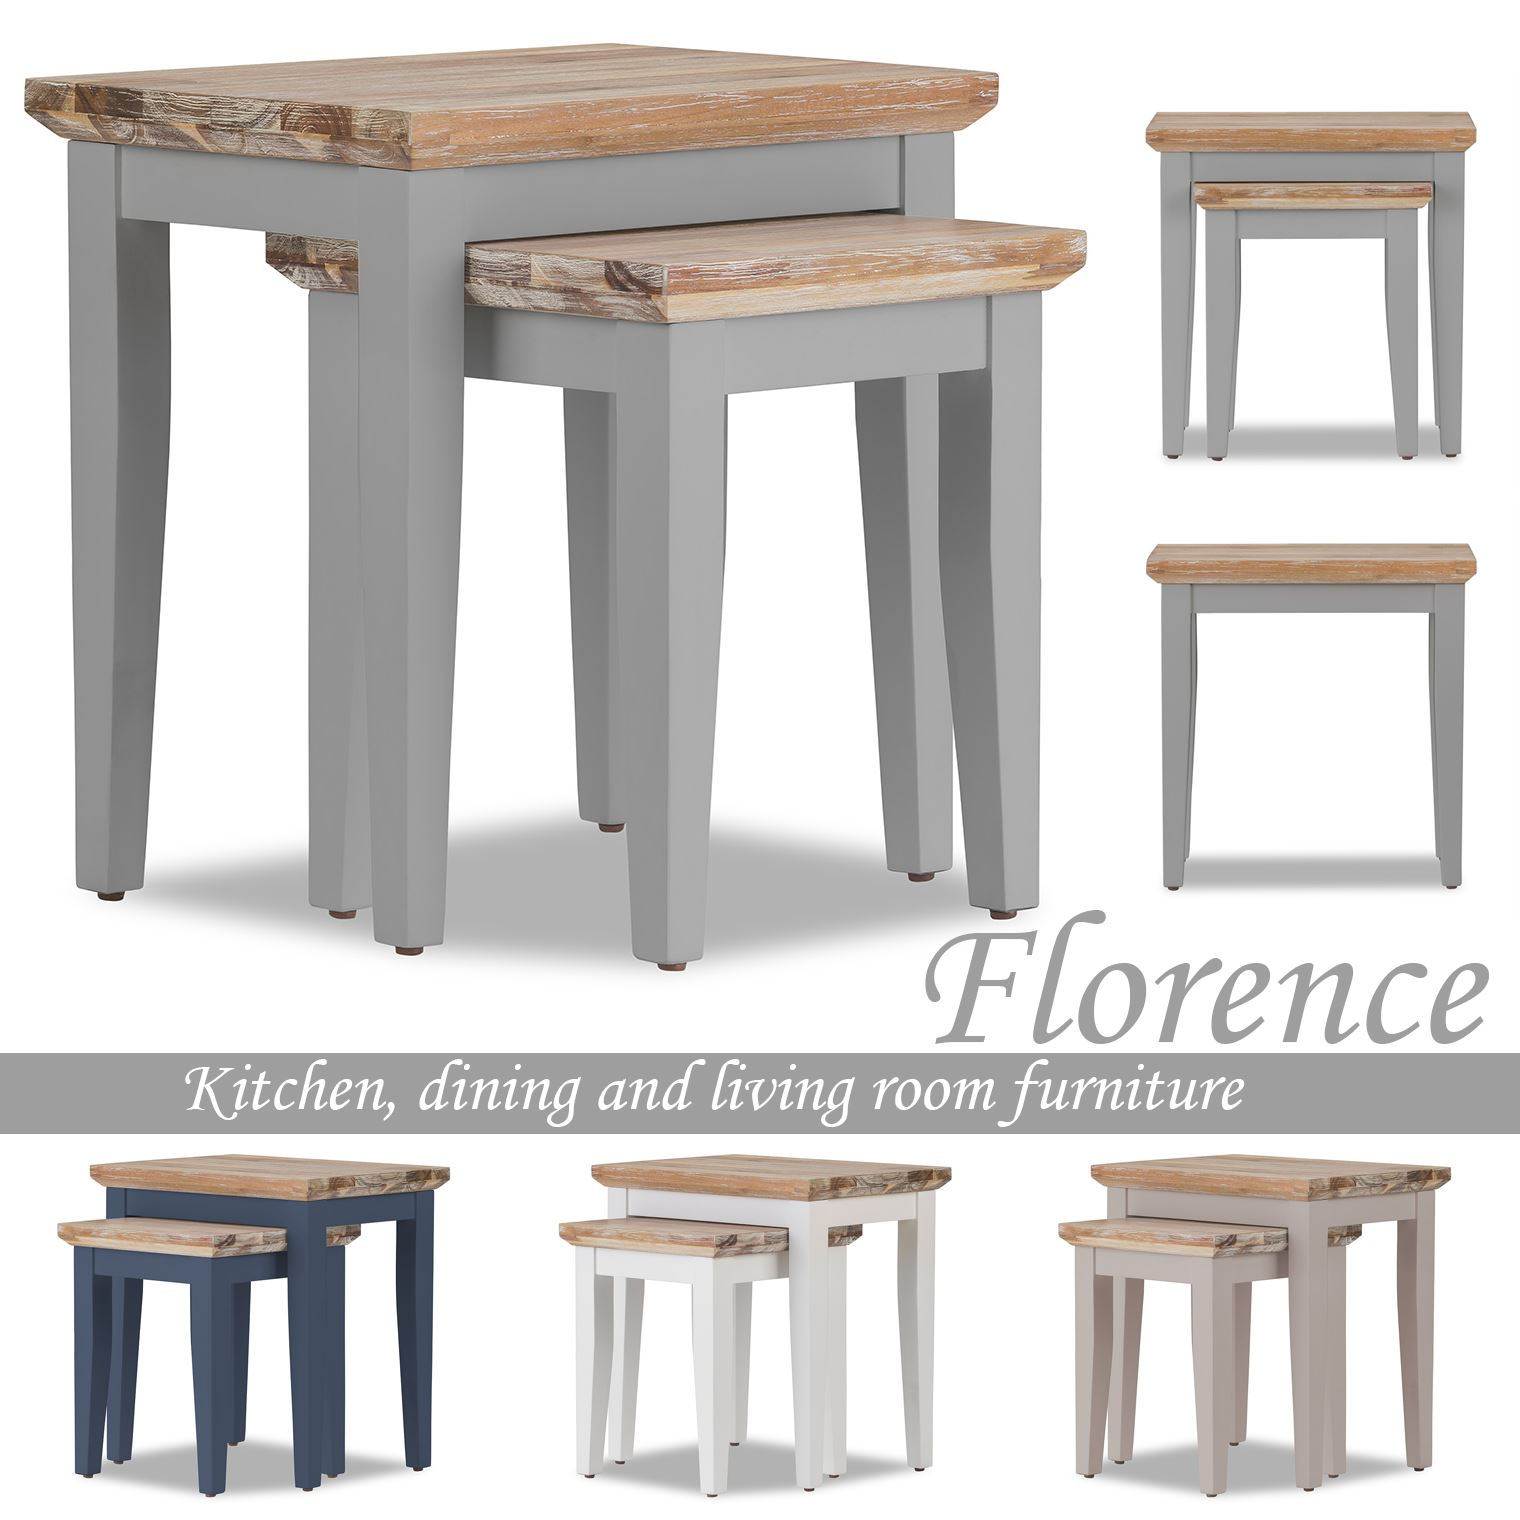 Details about florence nest of tables set of 2 sofa tableswooden lamp tables fully assembled